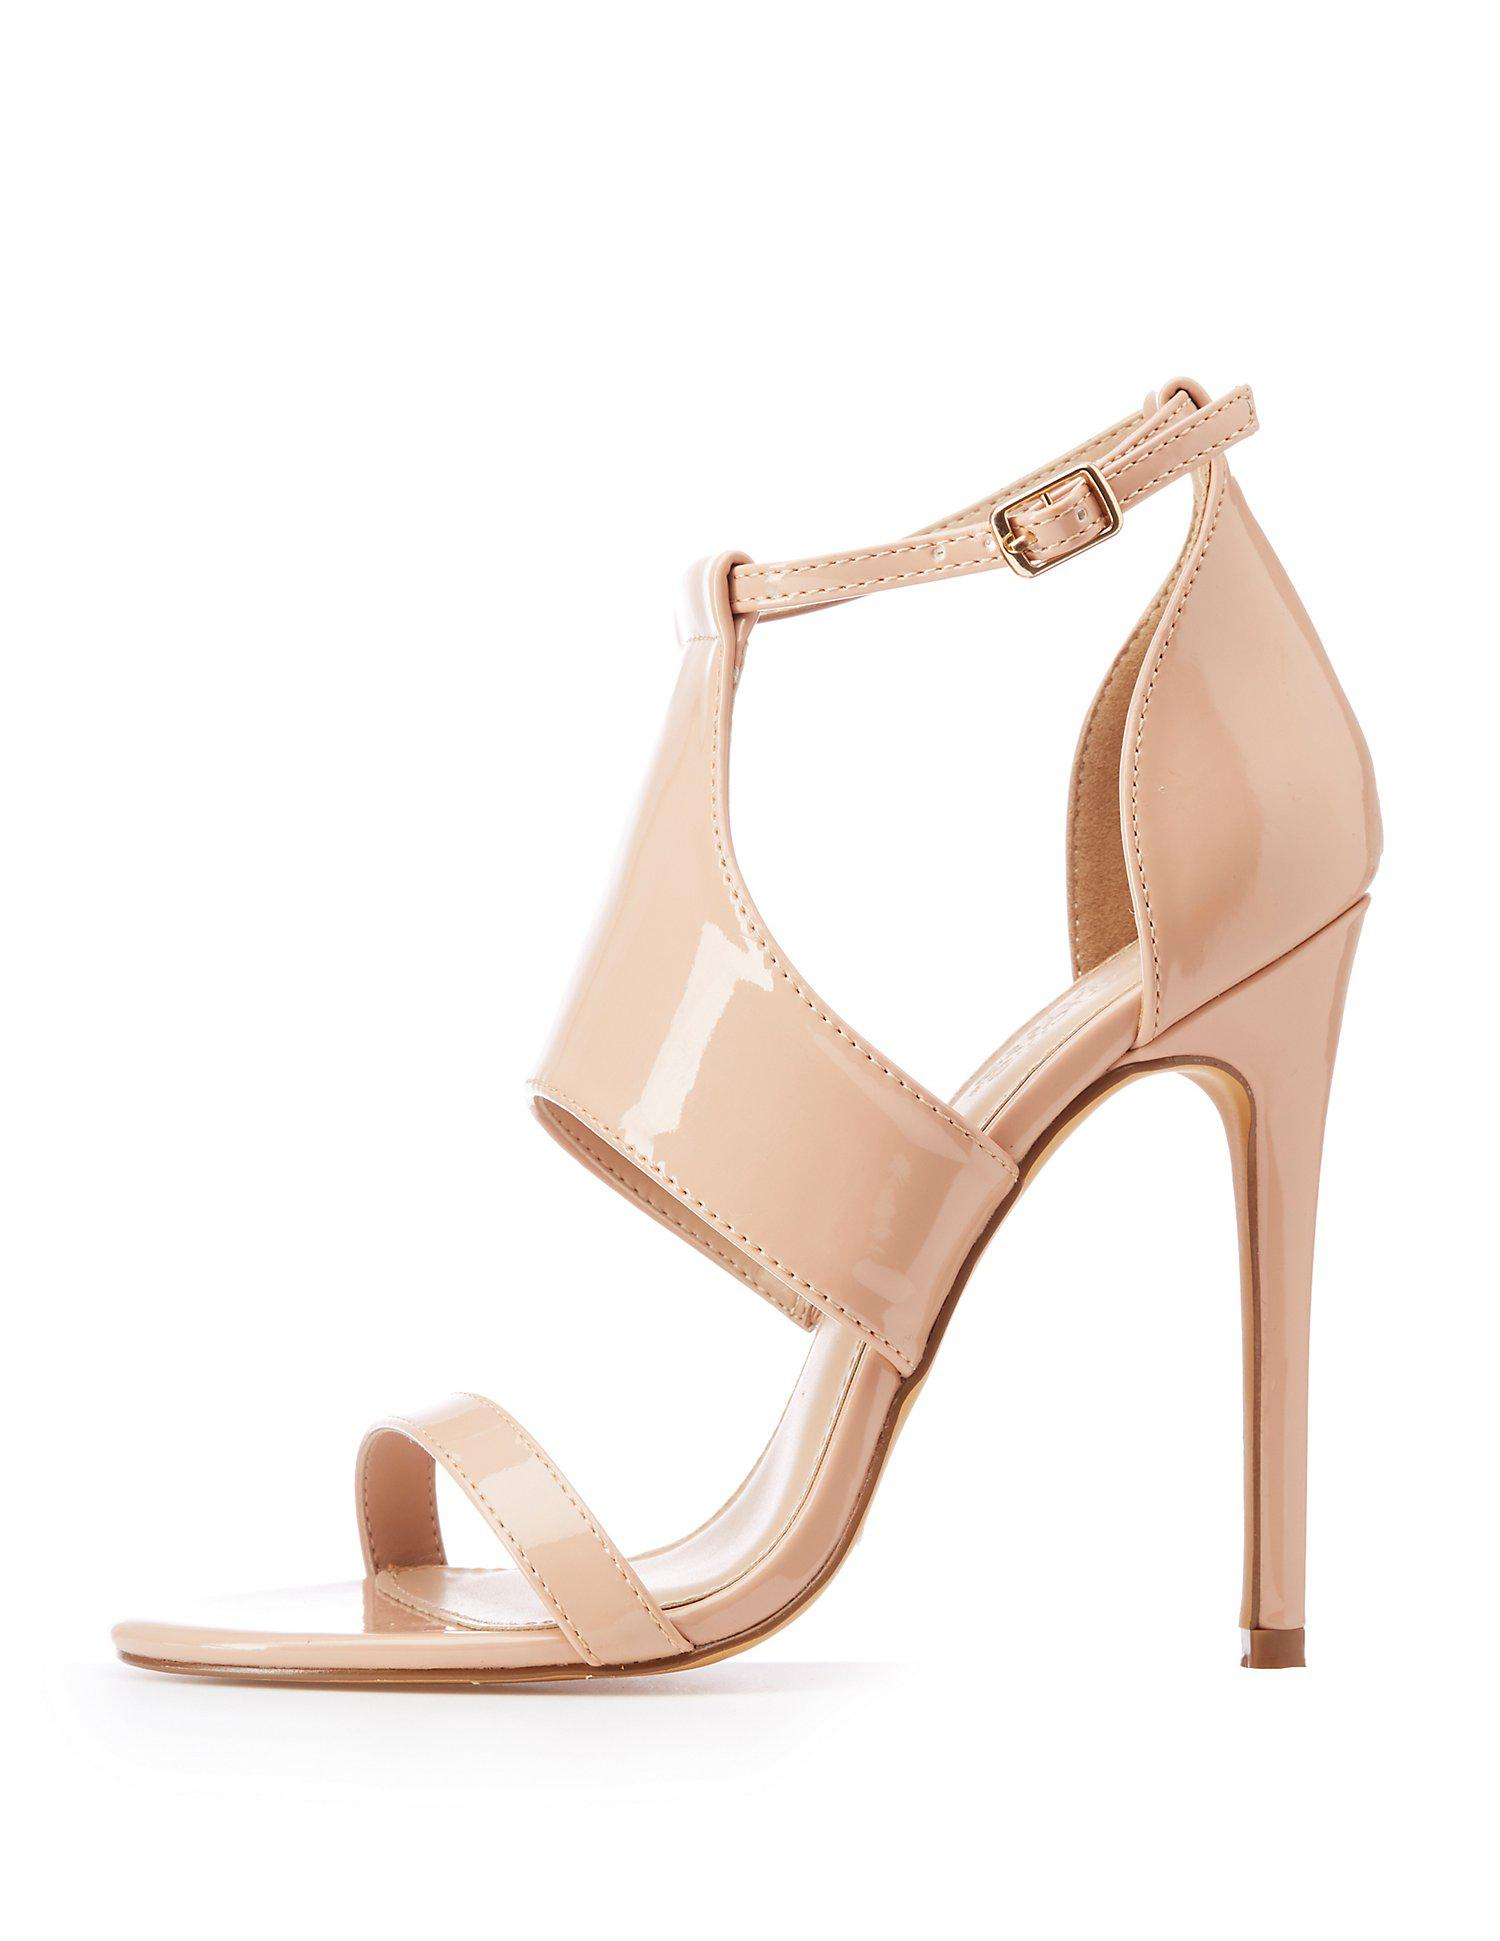 1a37414ed18 Lyst - Charlotte Russe Caged Open Toe Sandals in Natural